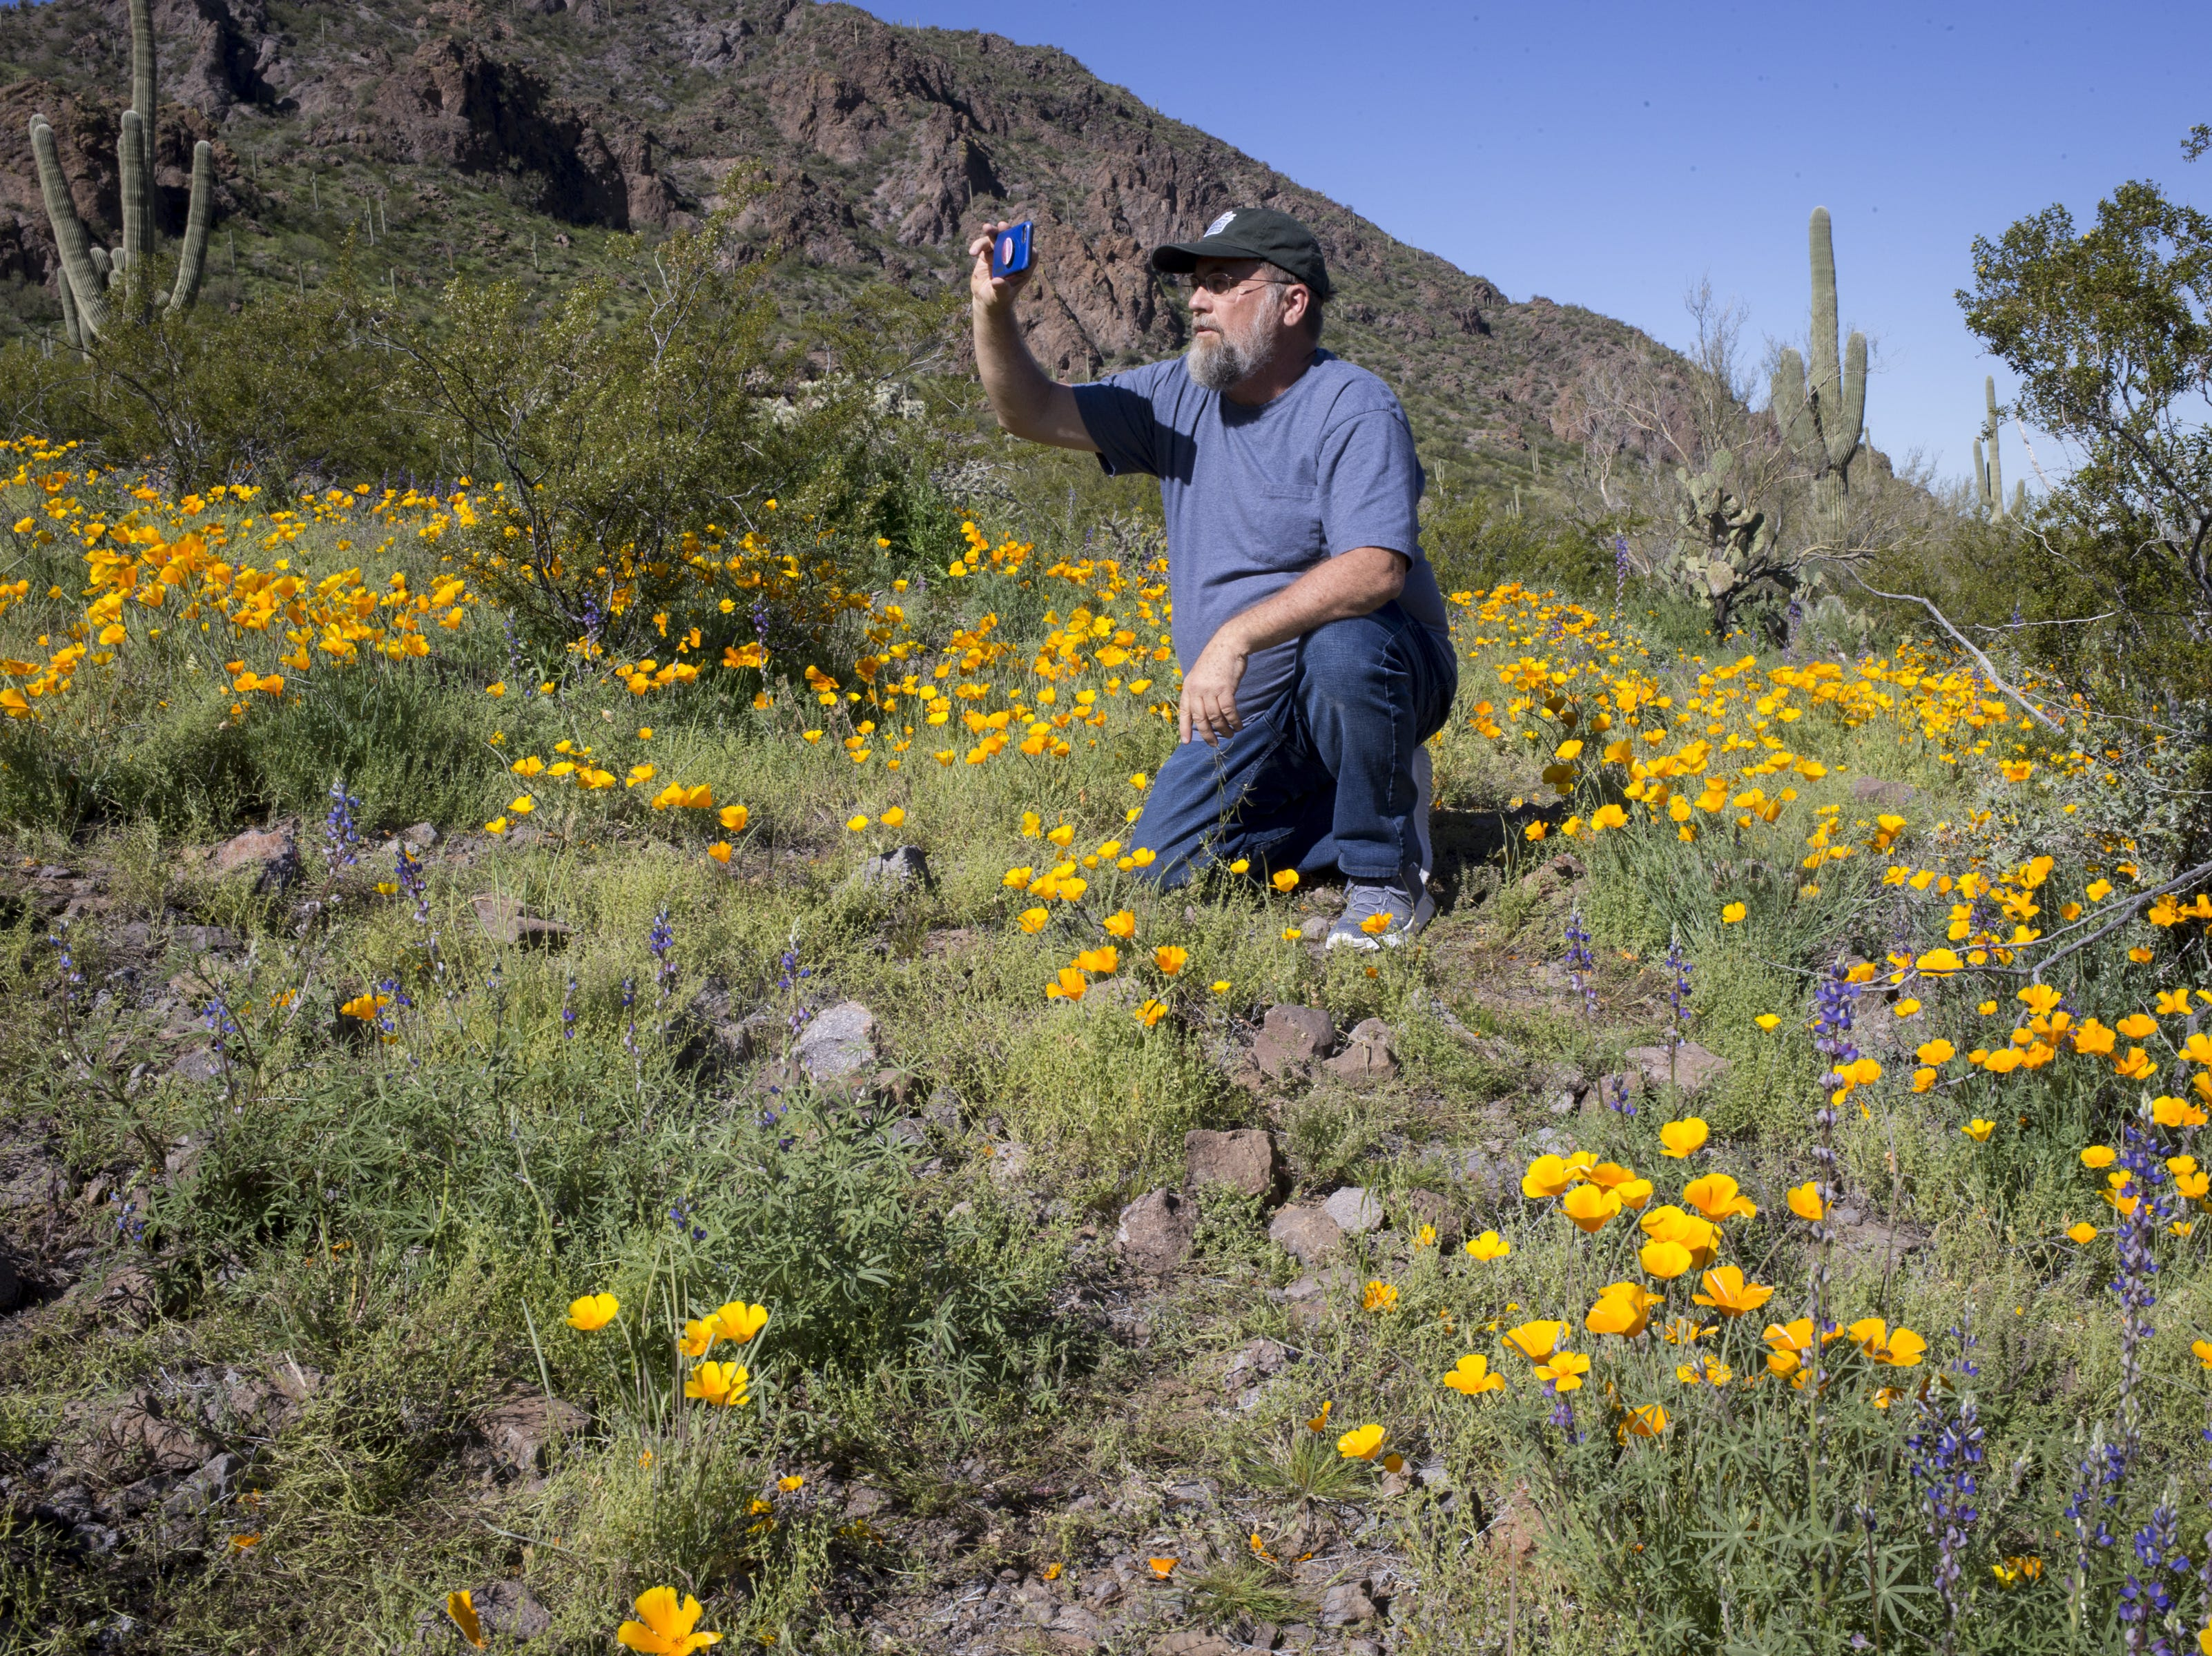 Kevin Dahl (Tucson) photographs wildflowers, March 5, 2019, at Picacho Peak State Park, Arizona.